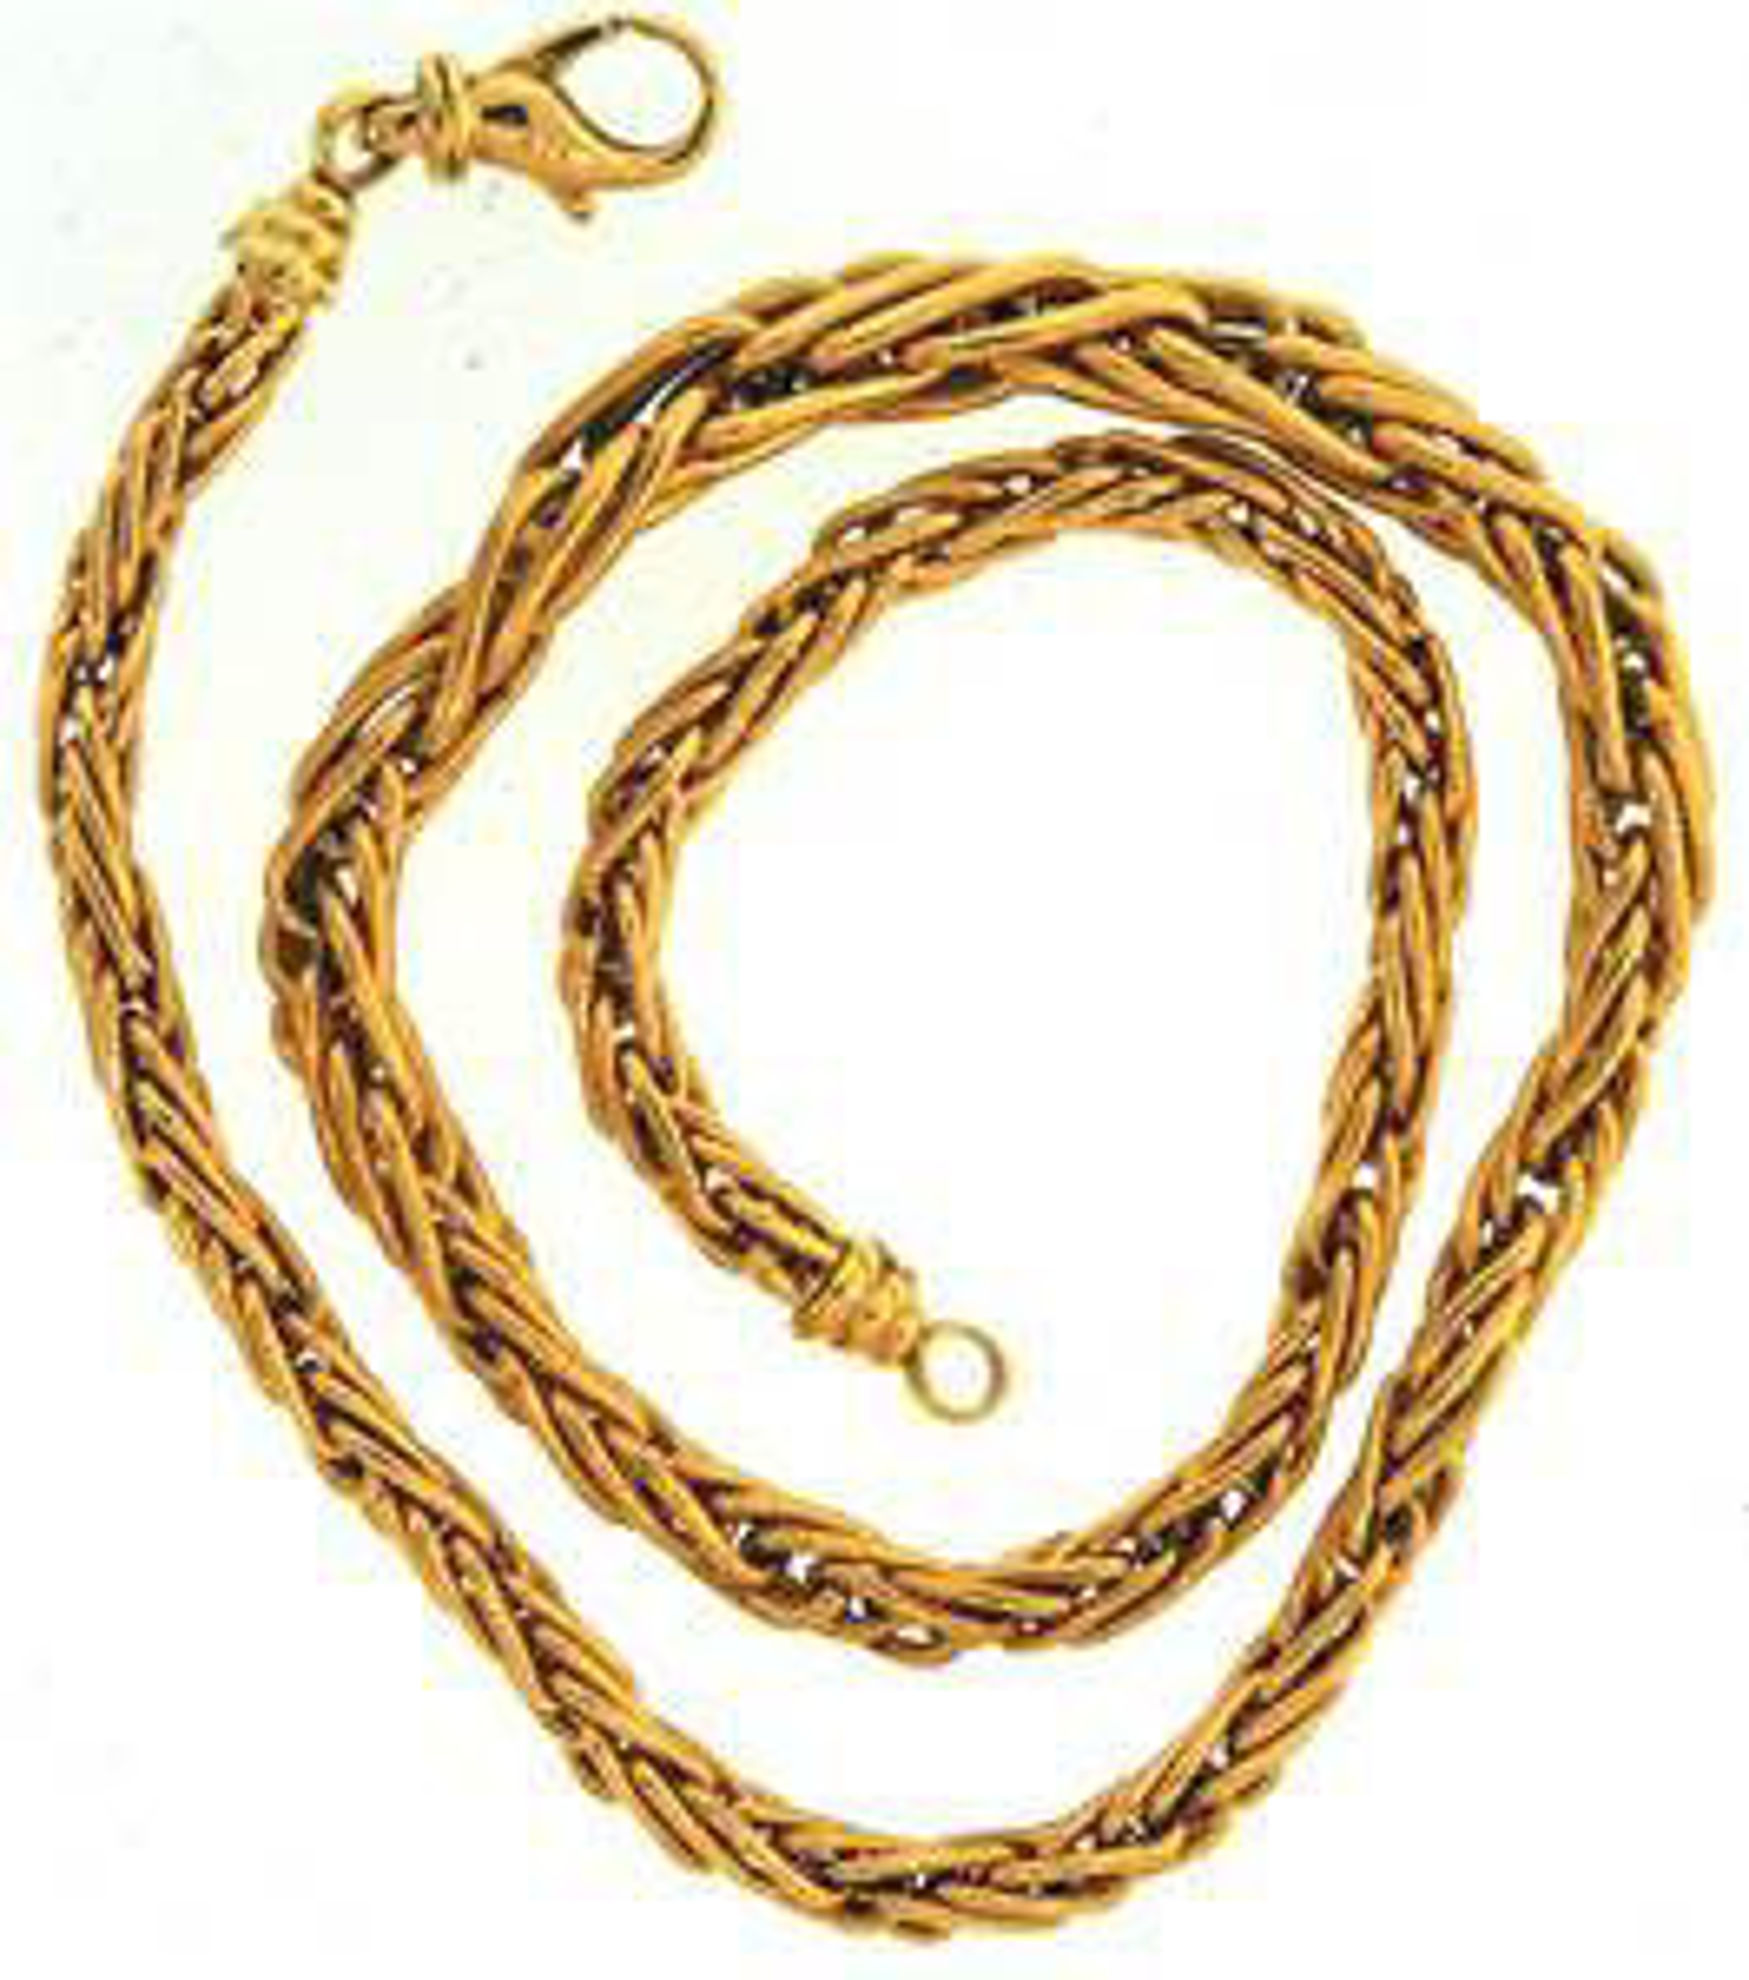 Picture of Necklaces 18kt-16.2 DWT, 25.2 Grams